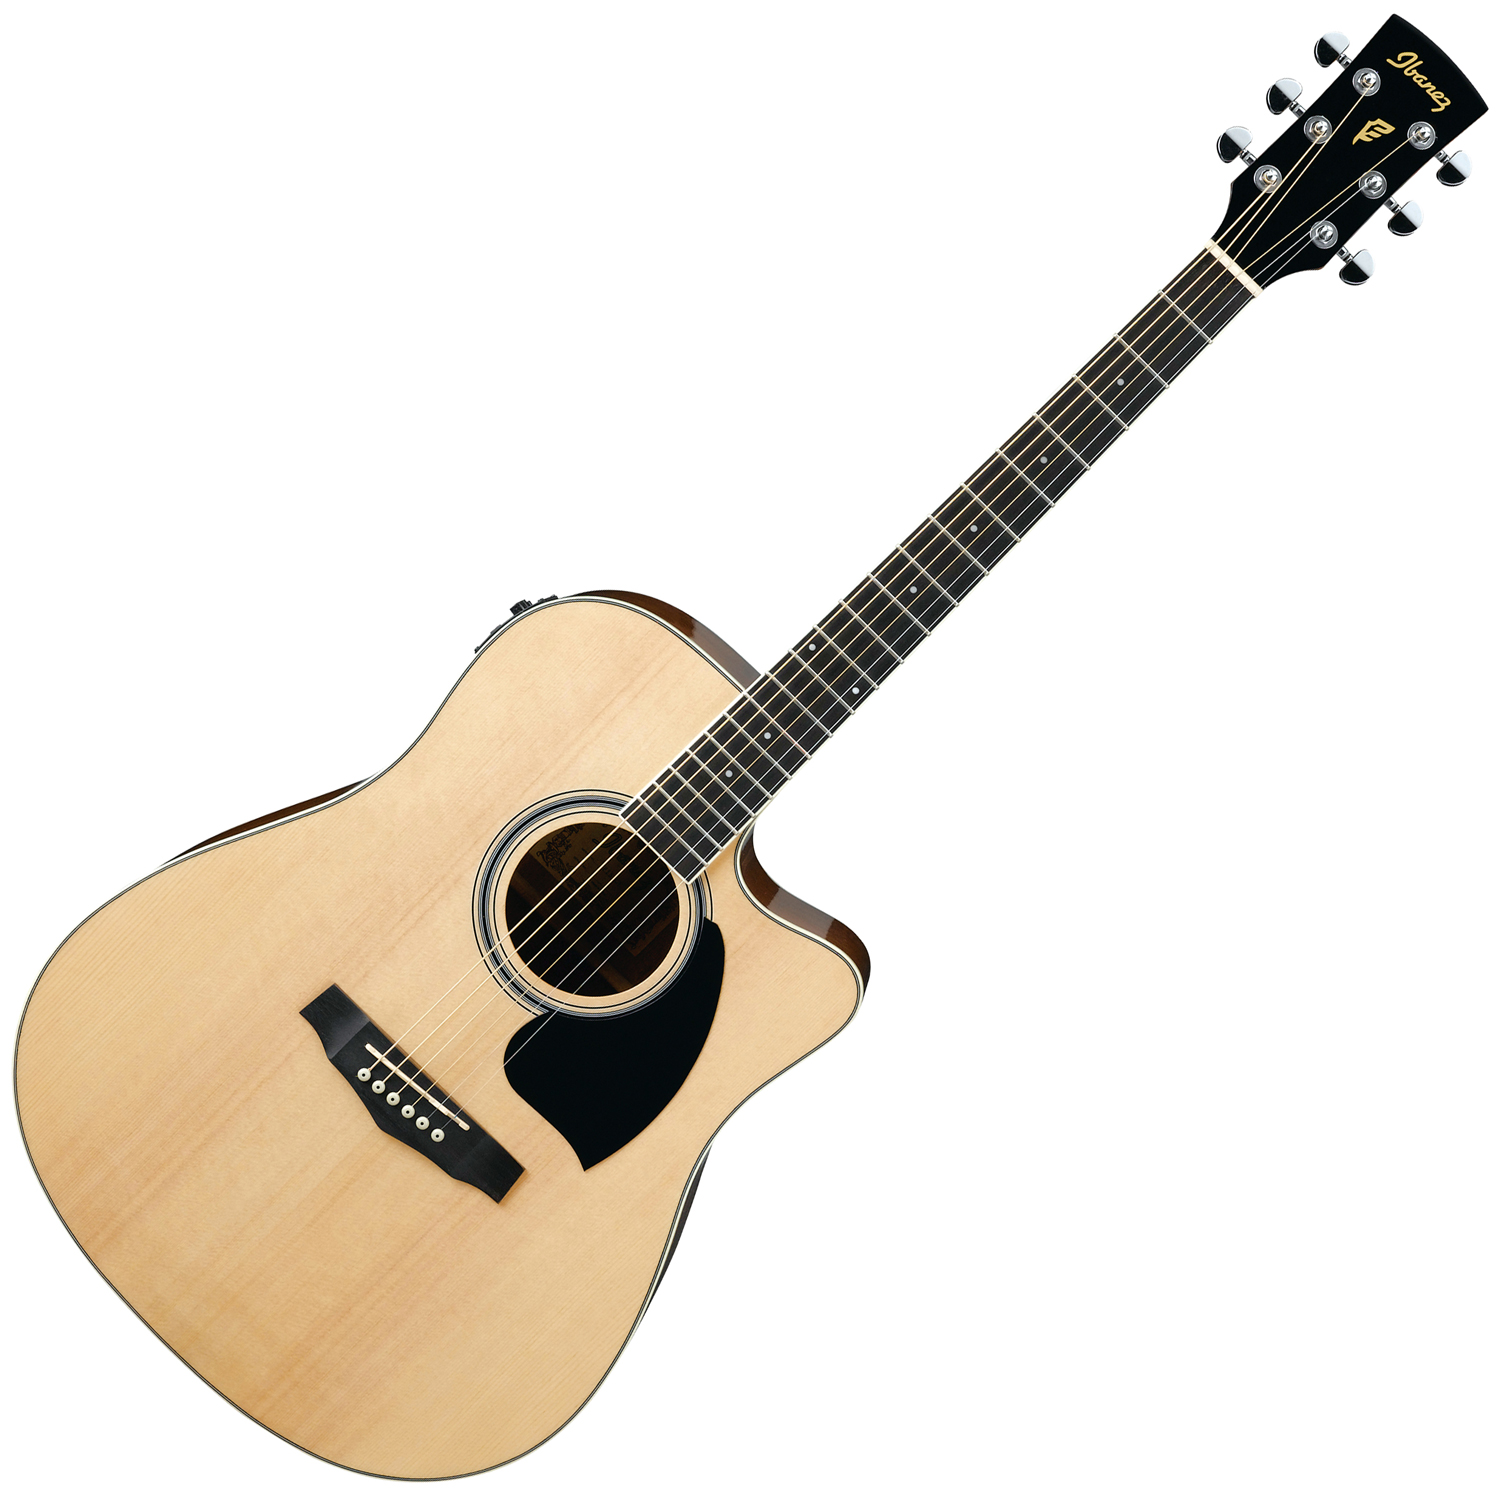 musicworks guitars acoustic electric guitars acoustic electric guitar ibanez acoustic. Black Bedroom Furniture Sets. Home Design Ideas